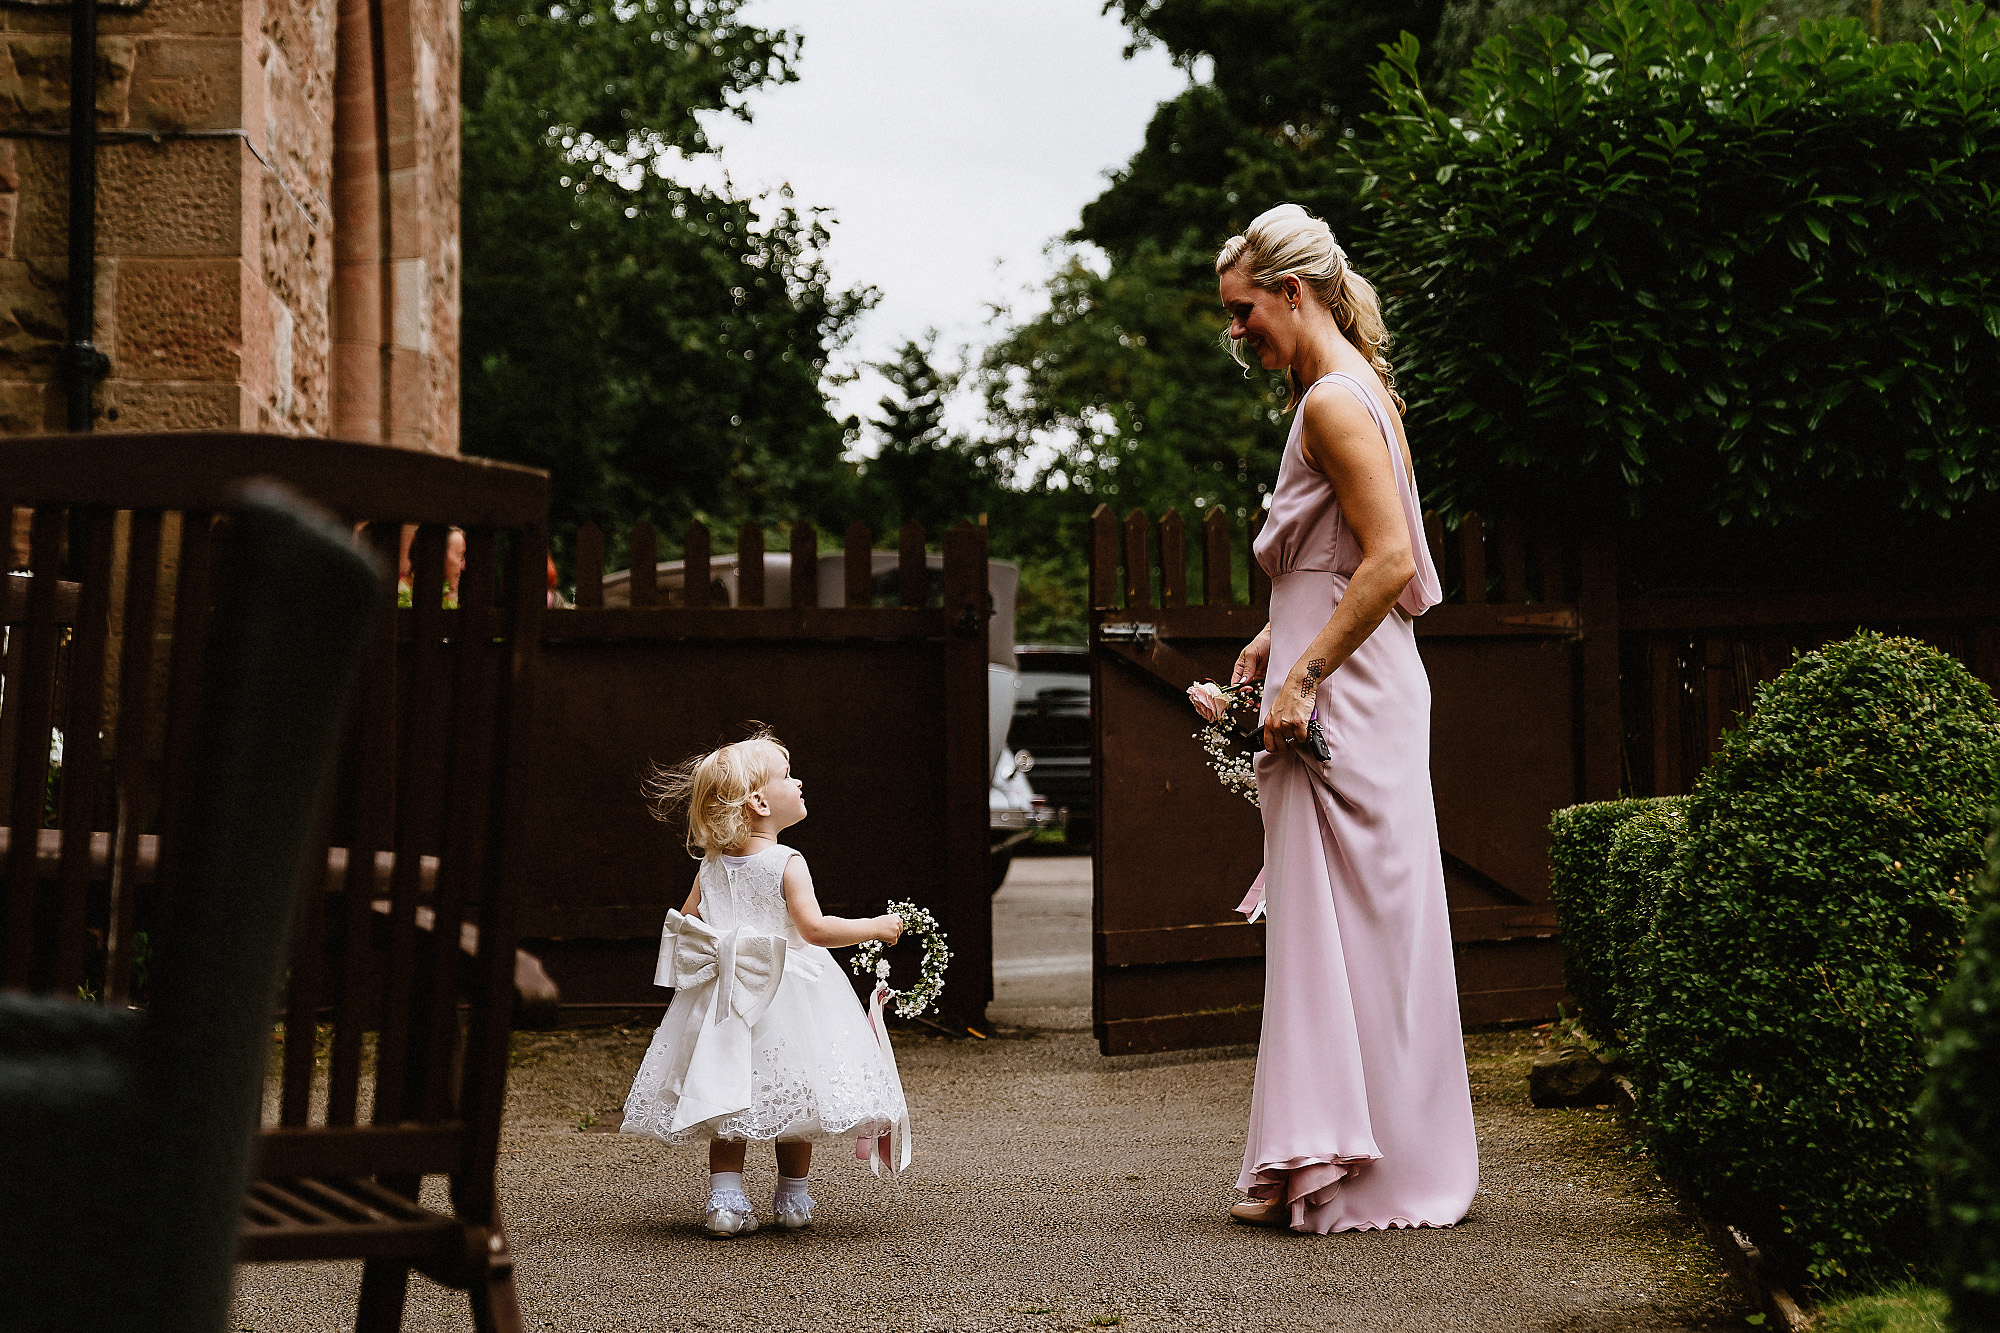 small flower girl looks up at bridesmaid